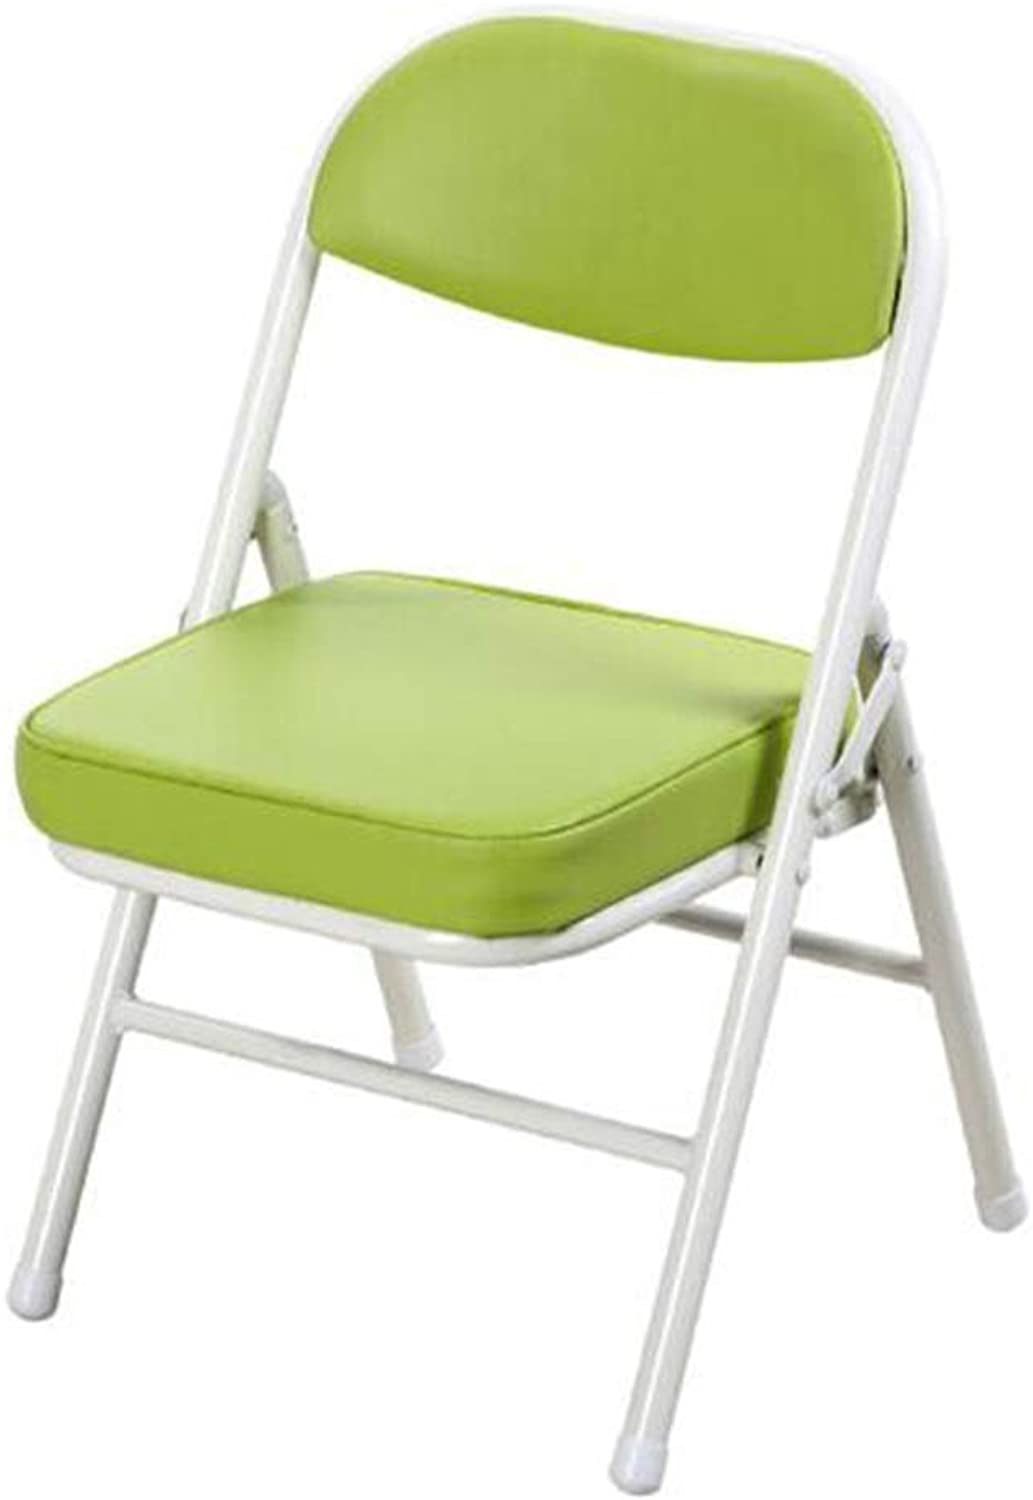 FENGFAN Folding Chair, Folding Stool, Computer Chair, Lounge Chair, Leather Art, Foldable Easy to Carry - Two Loaded - Multi-color Optional Folding Chair (color   Green)